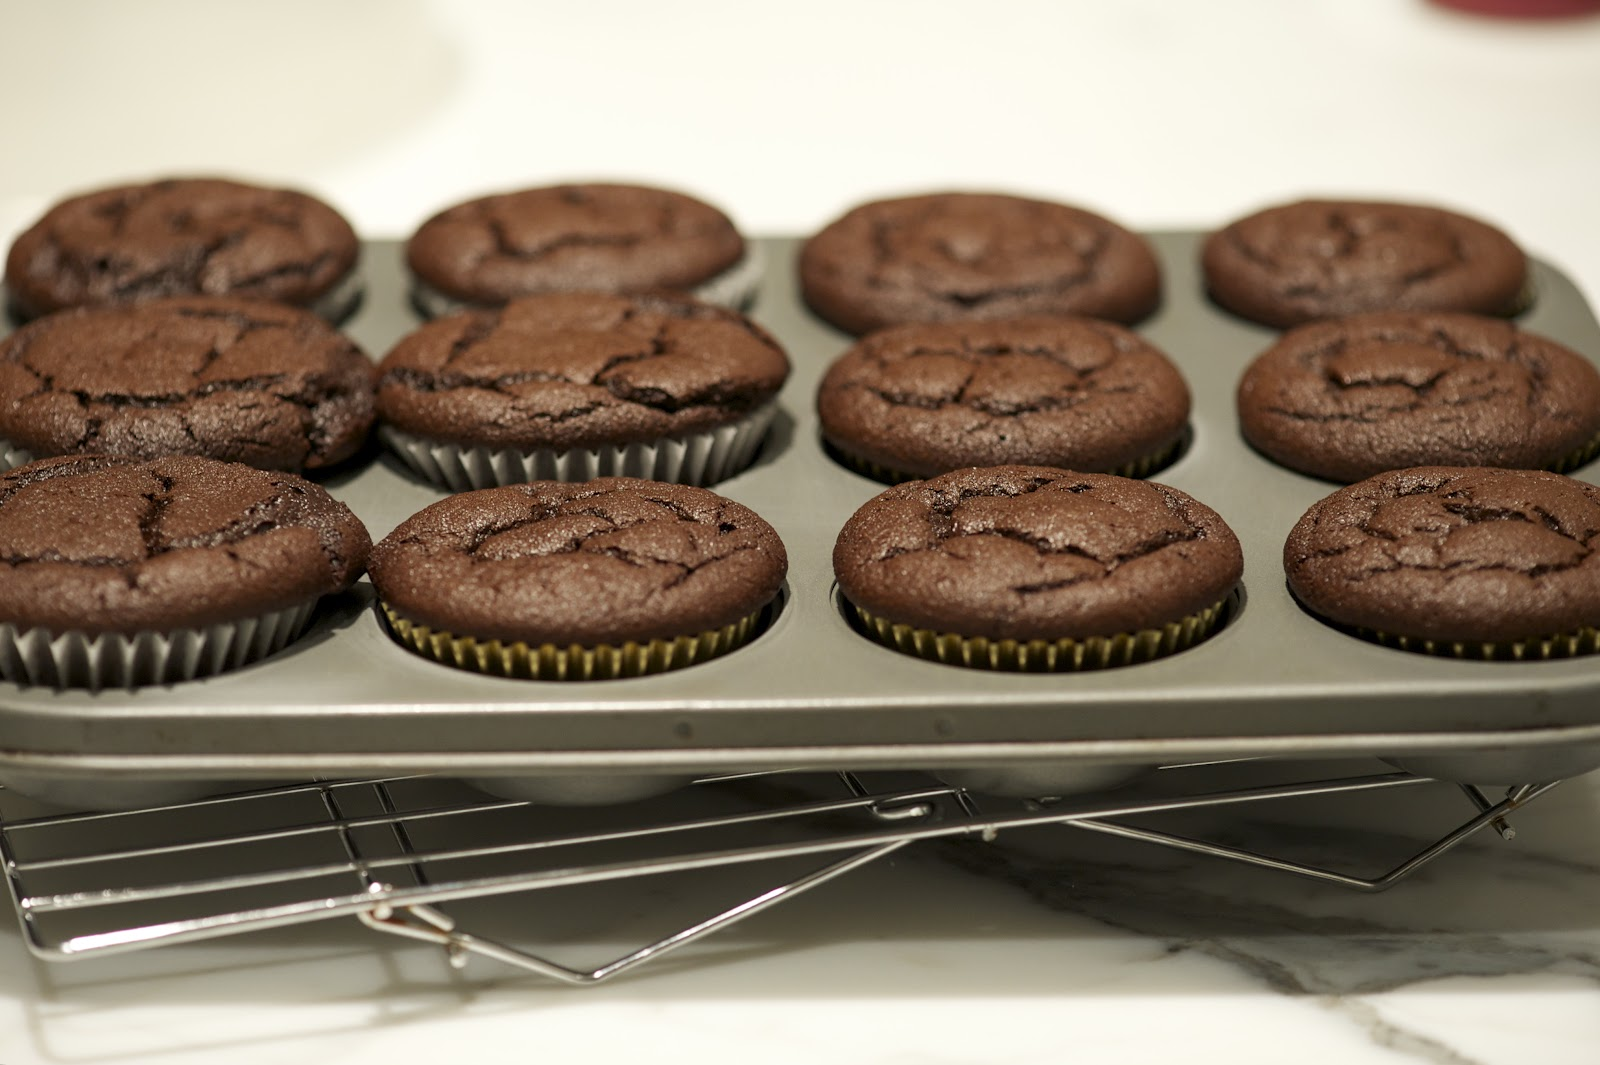 ... ON THE BRAIN: BEST EVER QUINOA CHOCOLATE CUPCAKES FOR VALENTINE'S DAY